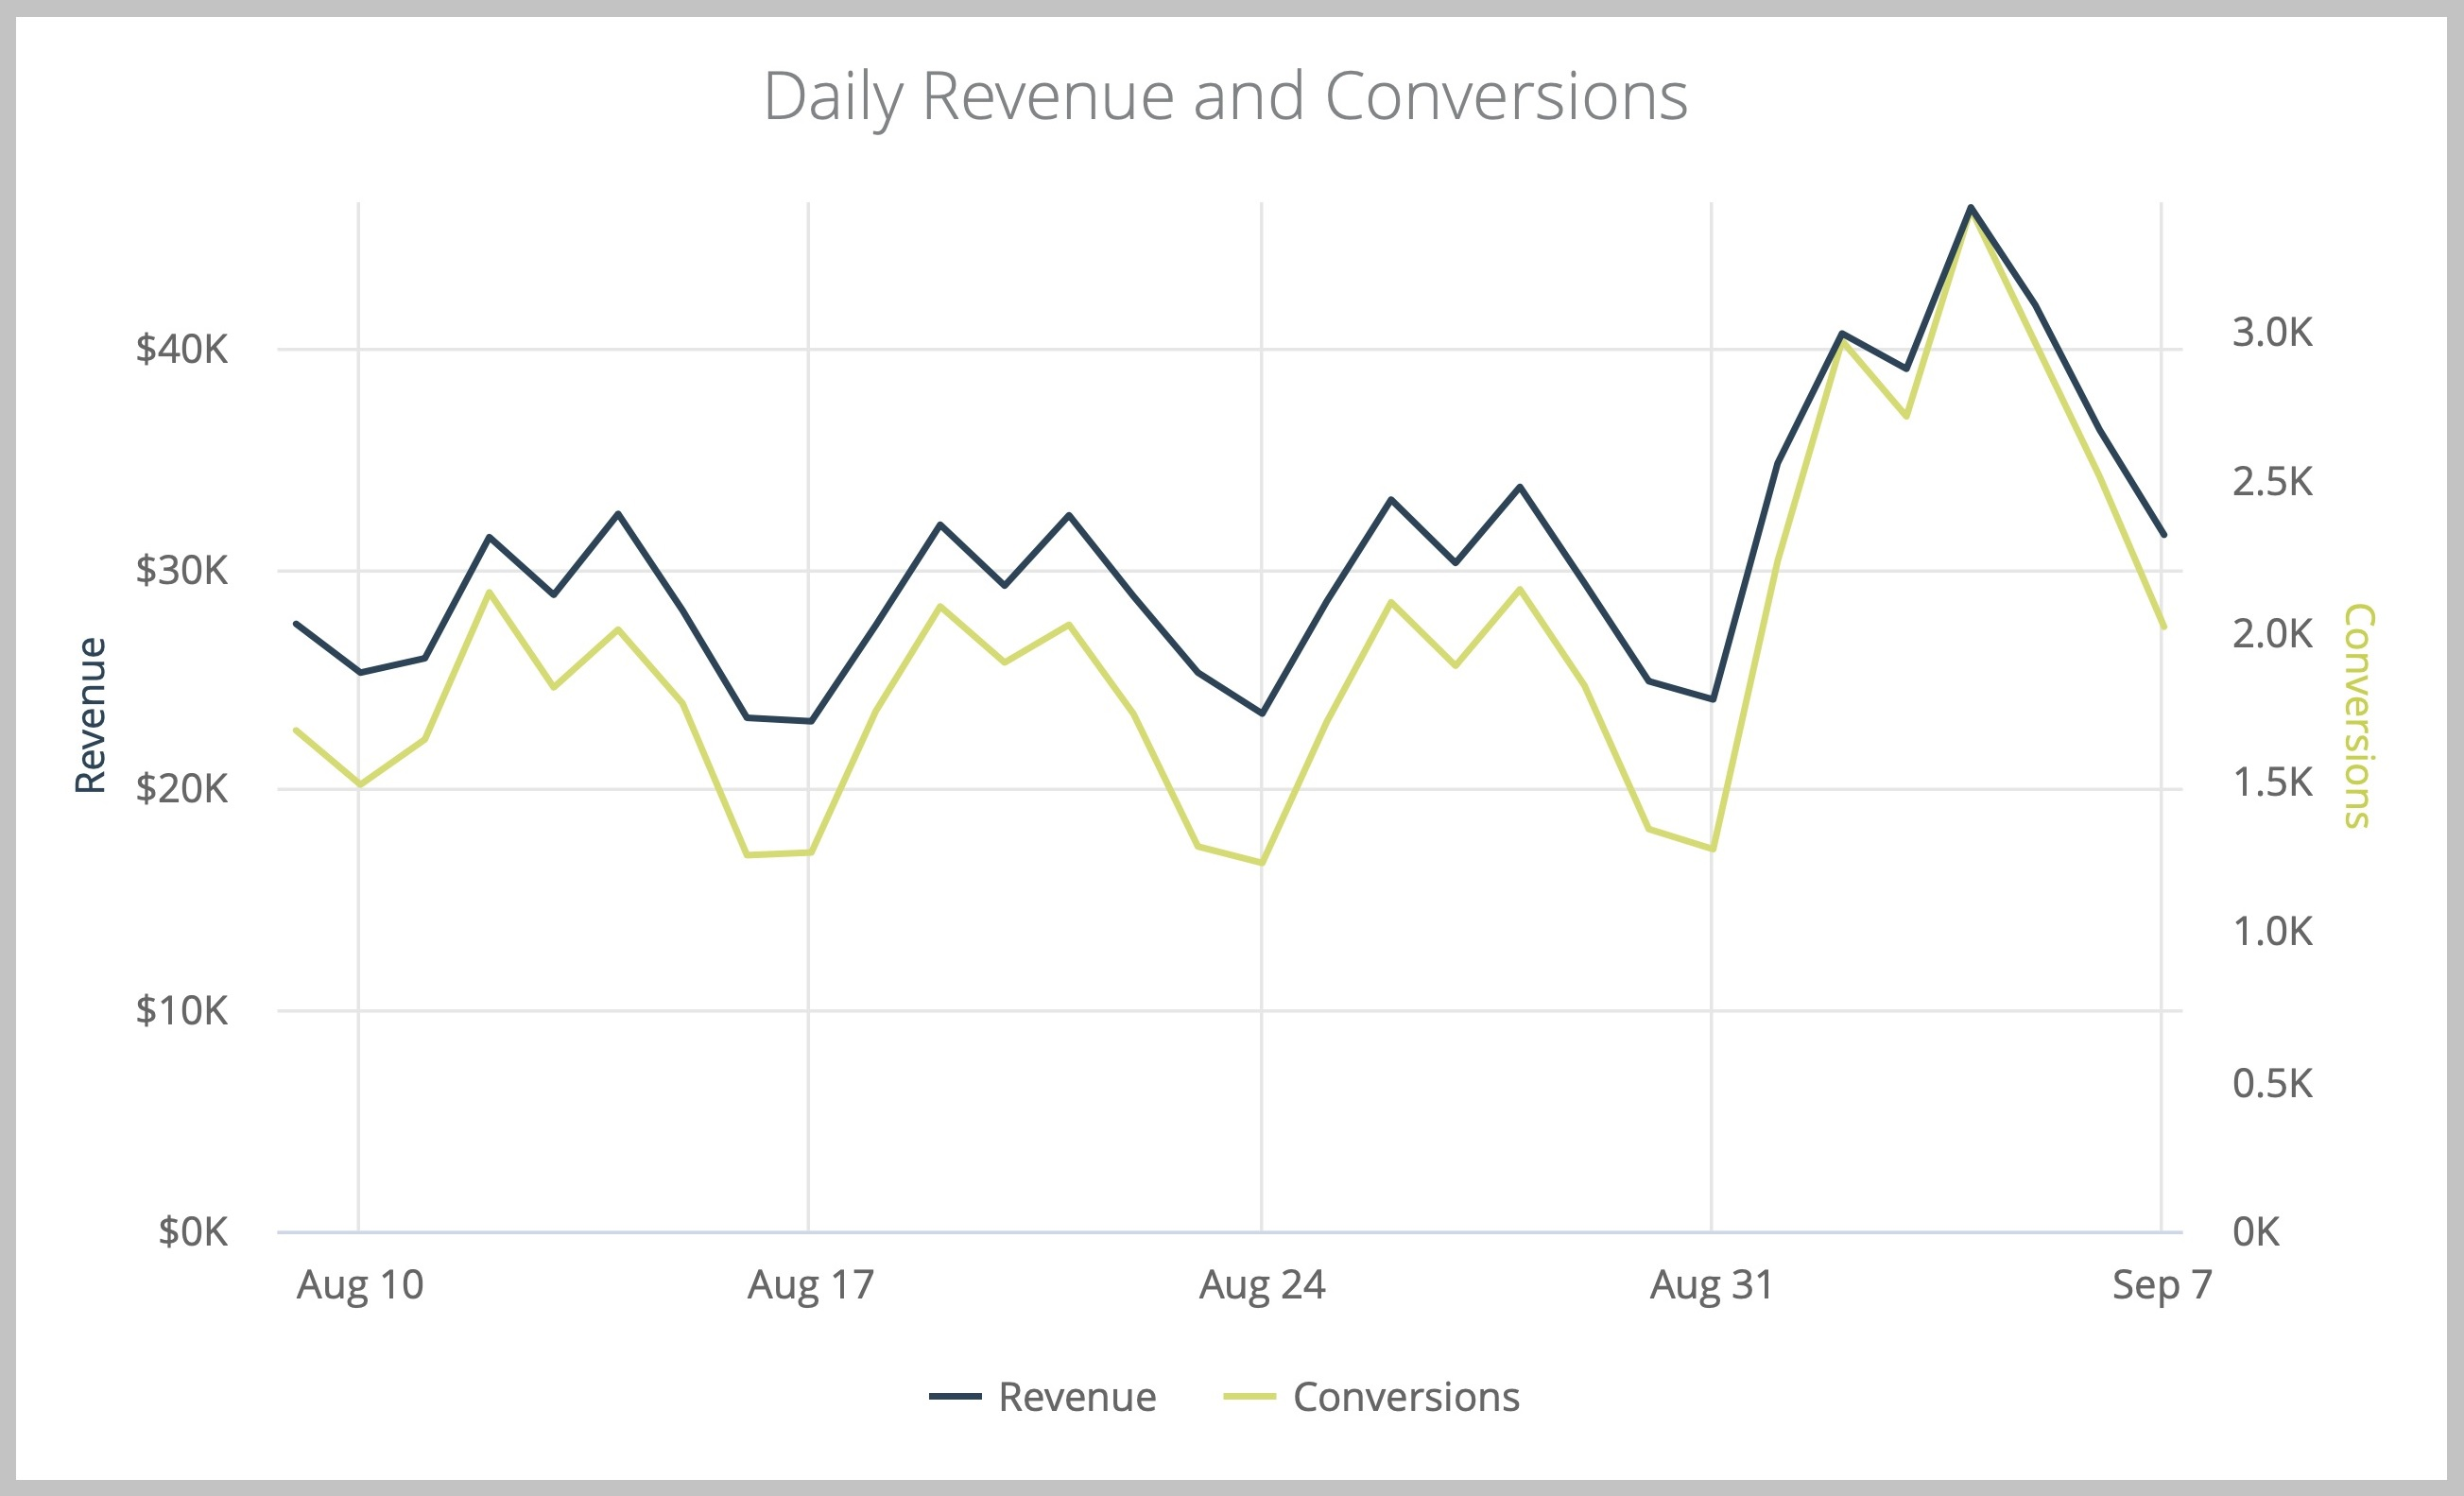 Sample Dashboard Widgets:  Aggregate Top Level Metric Trending from All Channels: Daily Revenue & Conversions